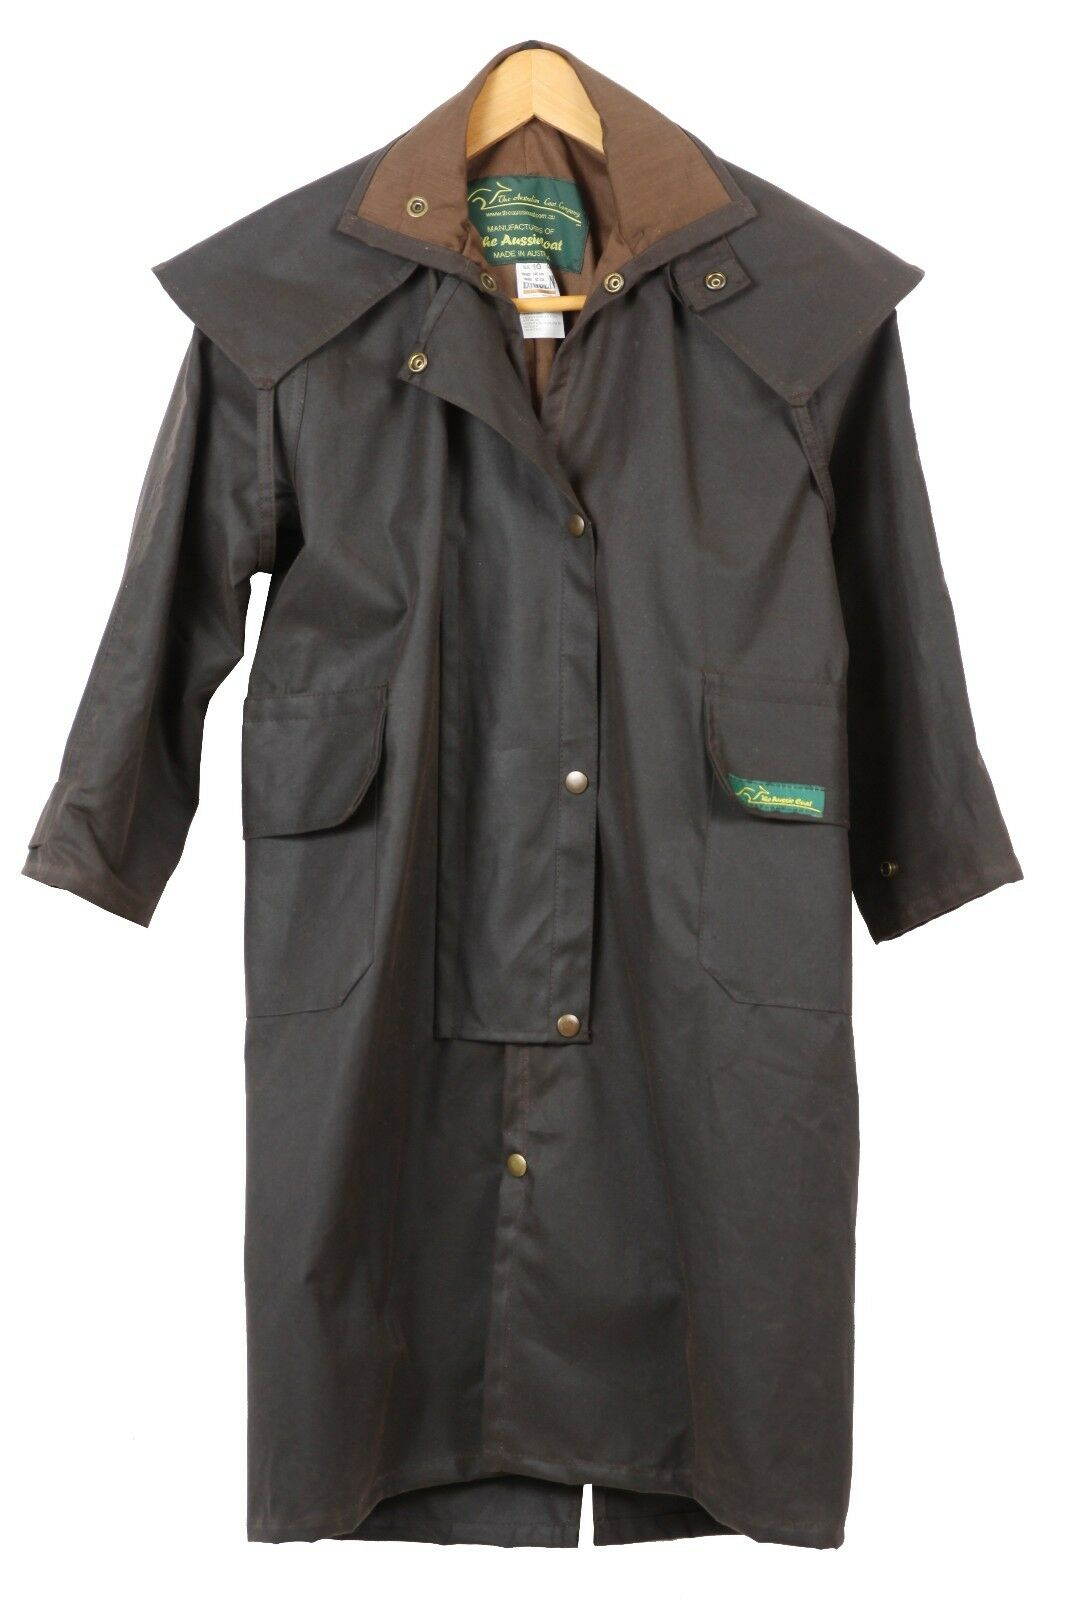 Traditional Brown full-length Oilskin Riding Coat 3XS - 8XL made in Australia